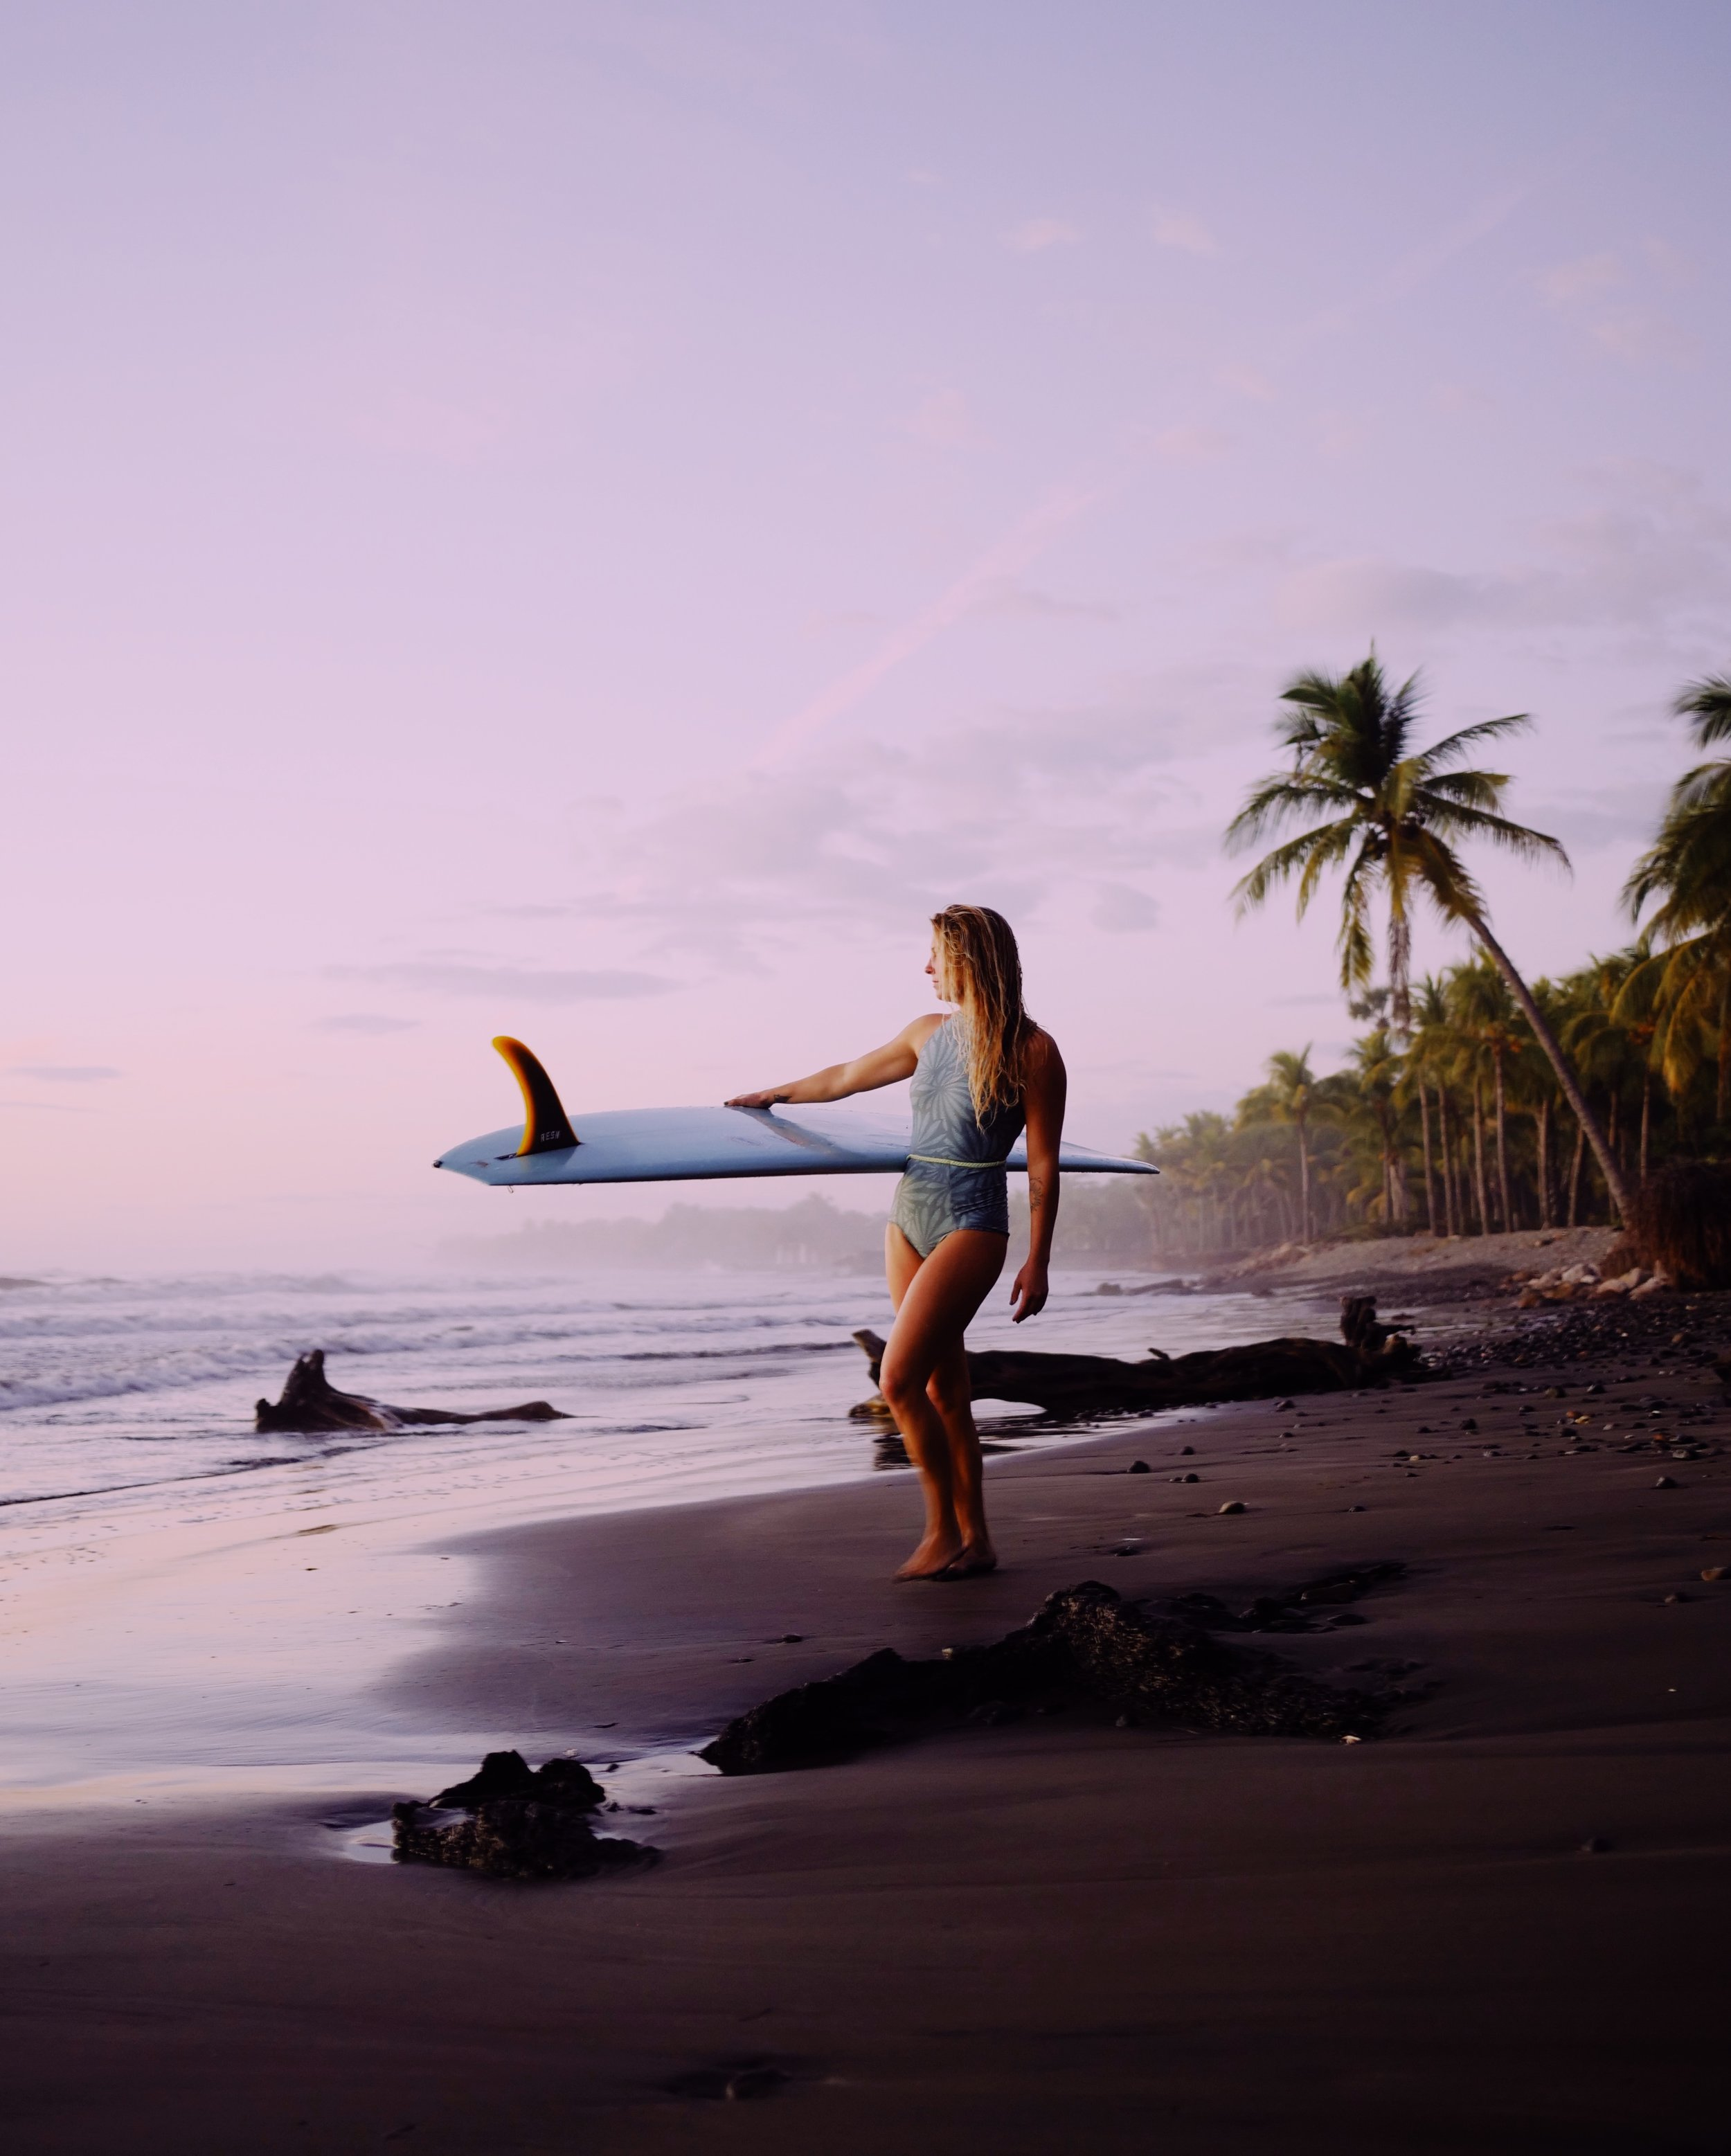 This was the first image I ever took of Karson - right after we both got out of the water on my first evening in Nicaragua. We've since become best of friends.